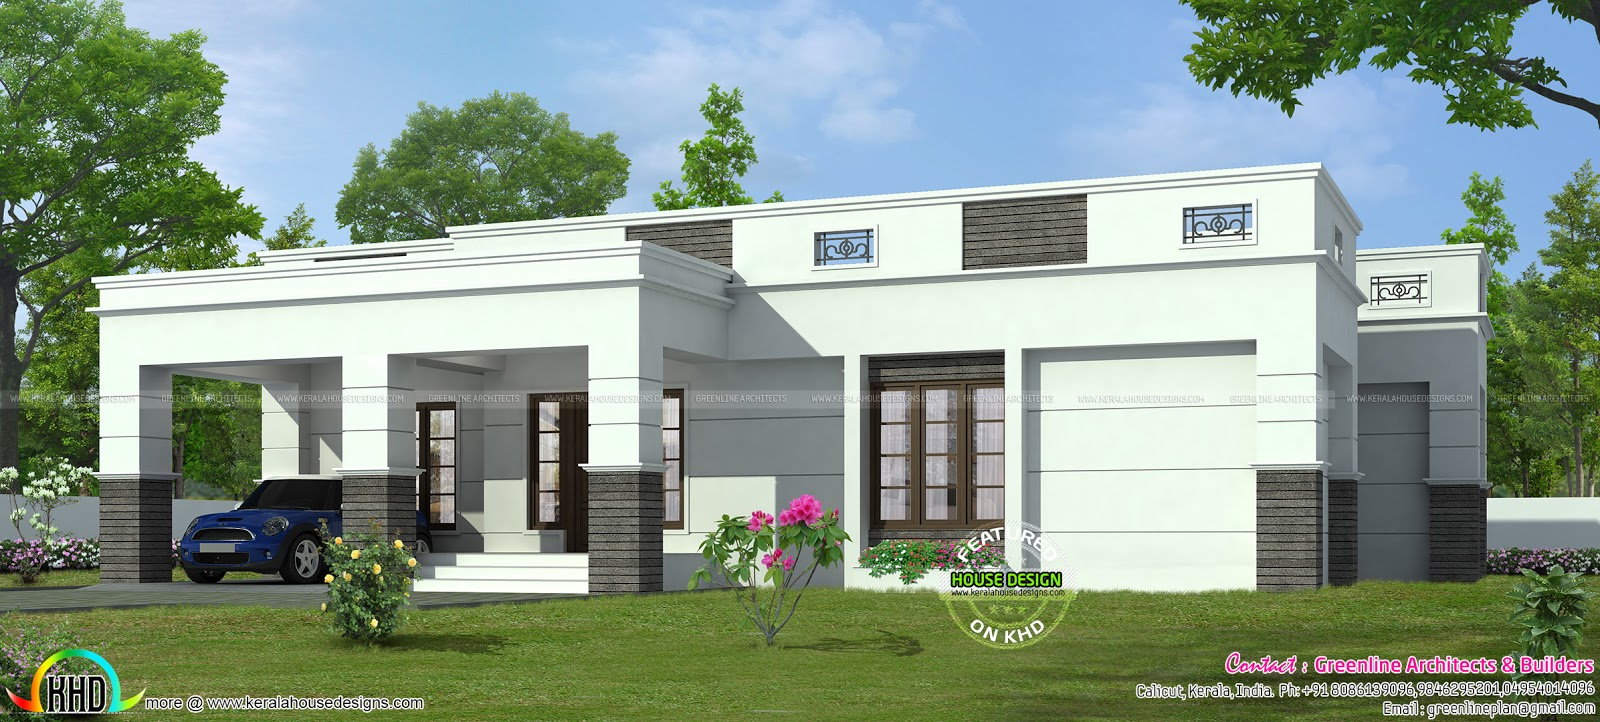 4 bedroom single storied flat roof home kerala home for Single floor 4 bedroom house plans kerala